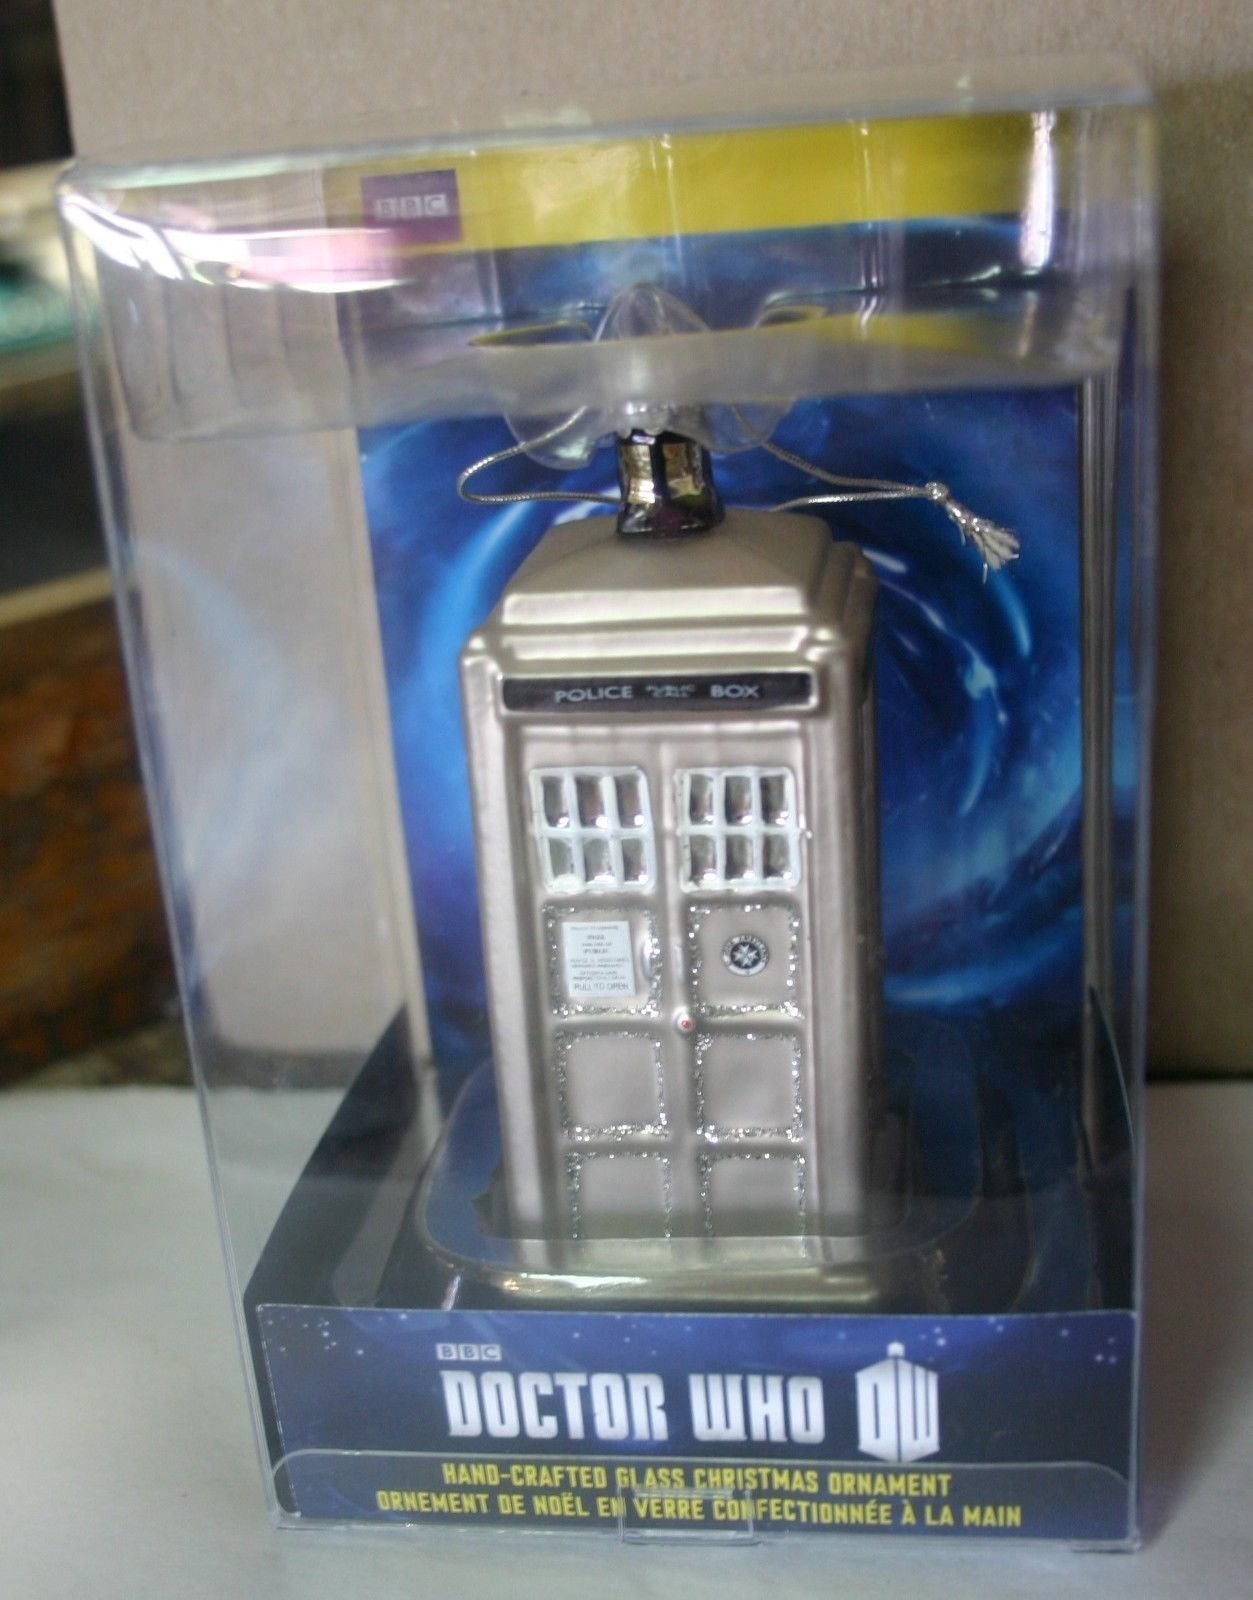 Doctor Who Tardis Silver Limited Edition 50th Anniversary Police Call Box Glass Christmas Ornament